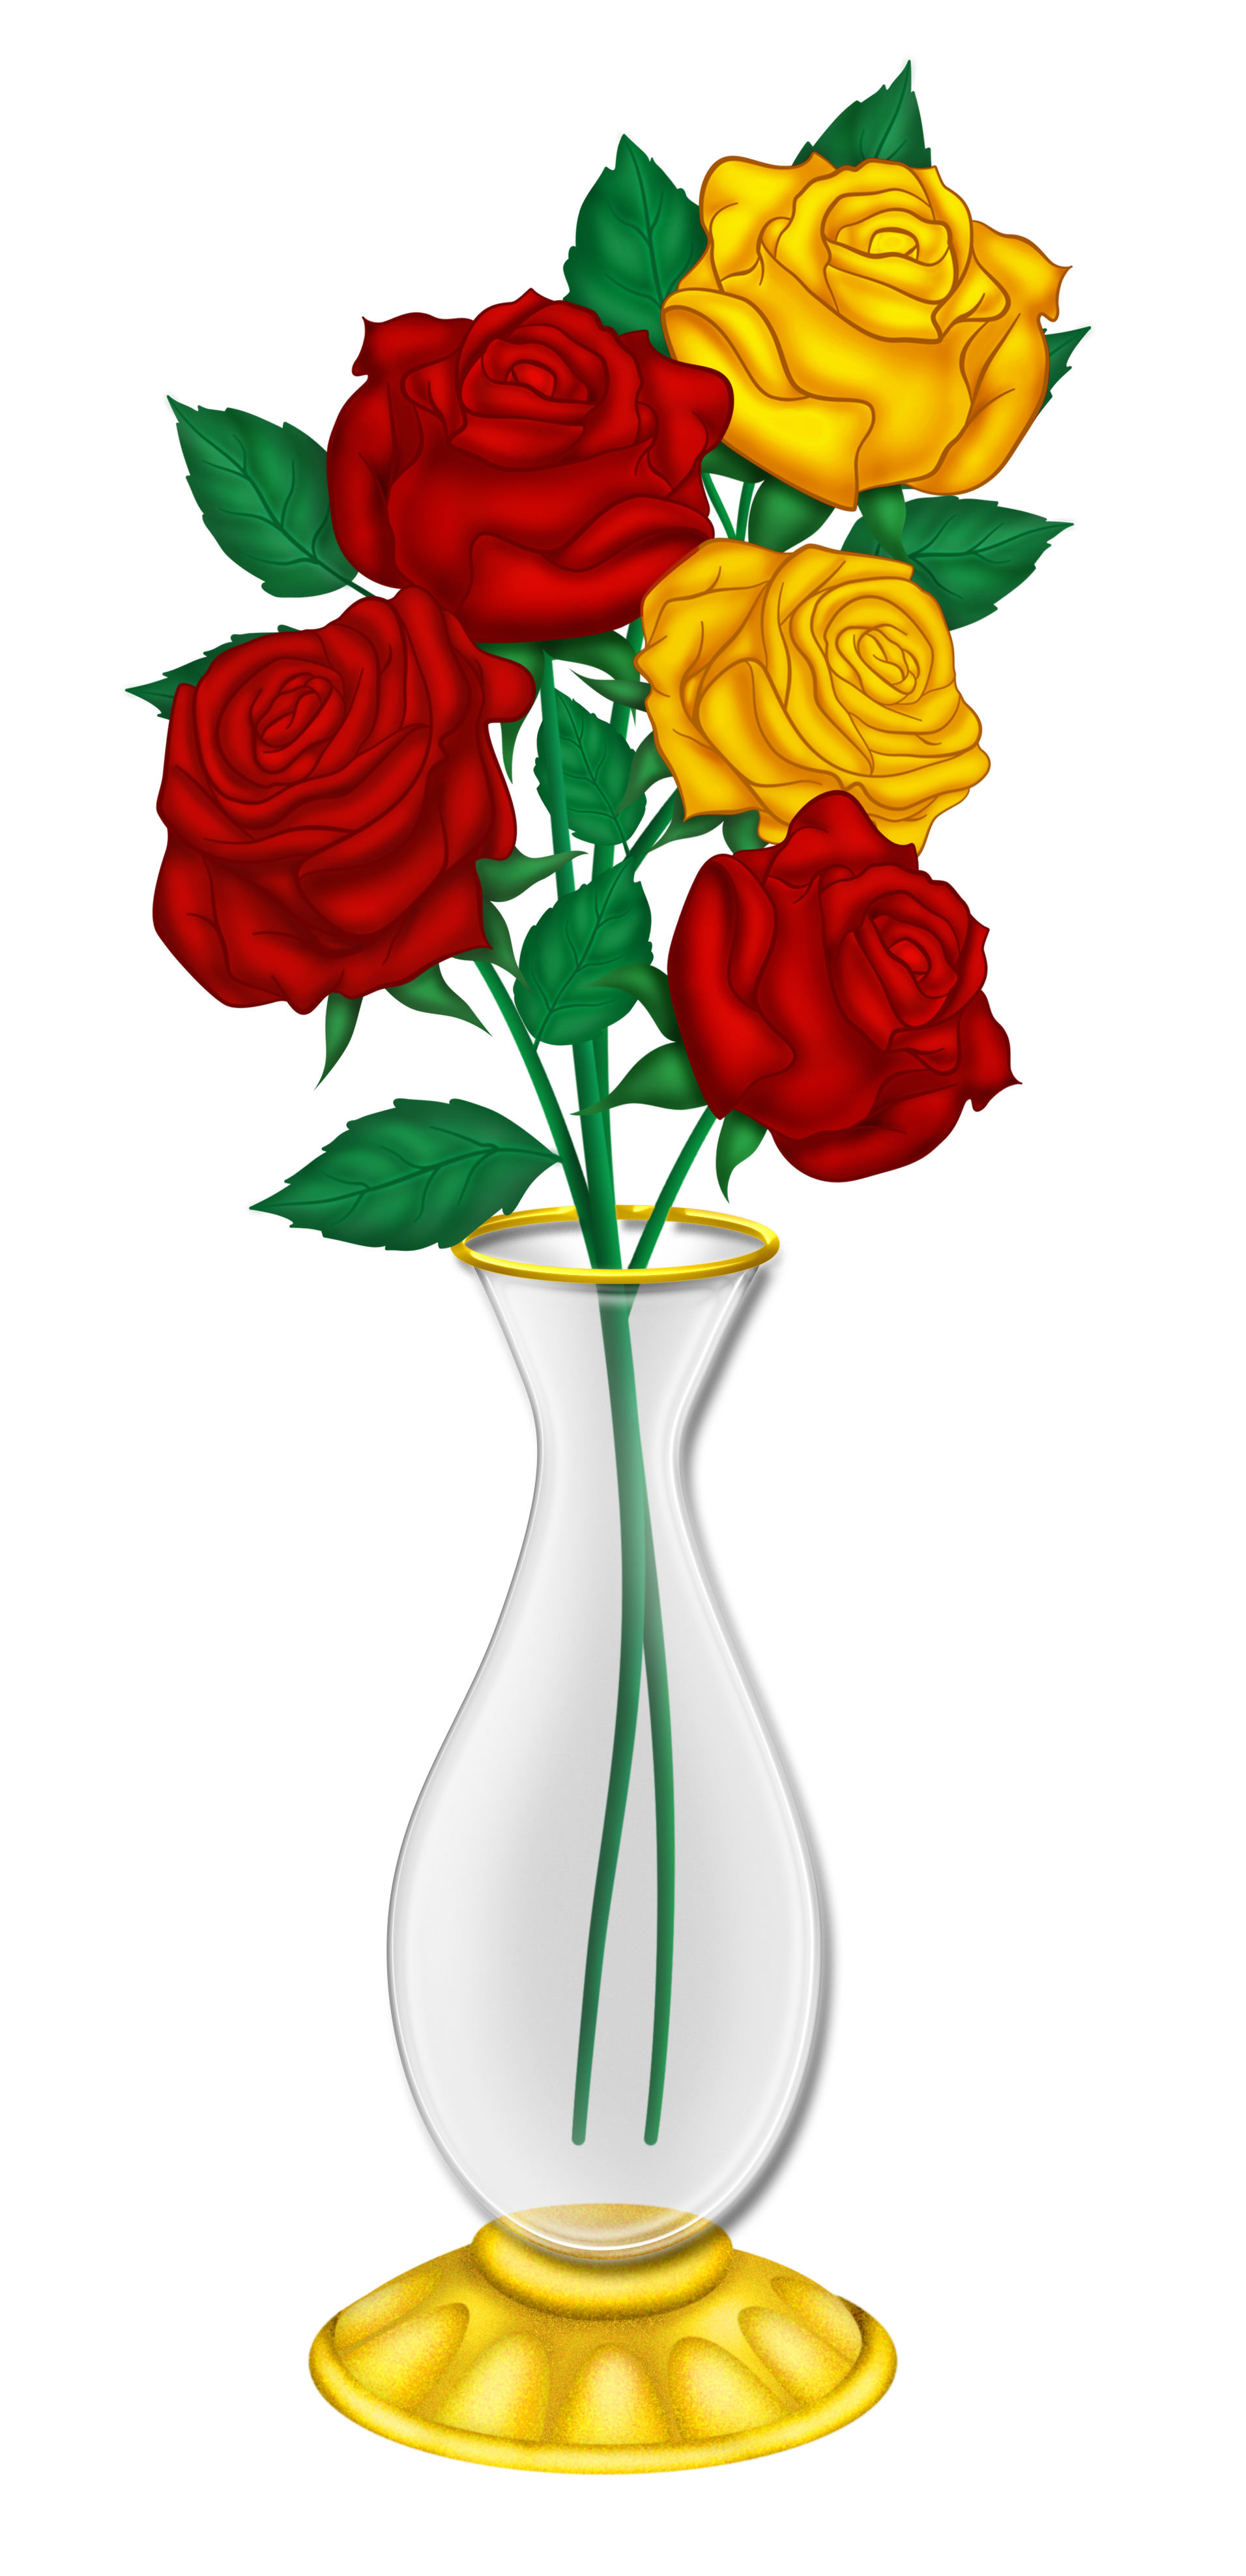 Broken flower clipart image stock Vase Clipart at GetDrawings.com | Free for personal use Vase Clipart ... image stock